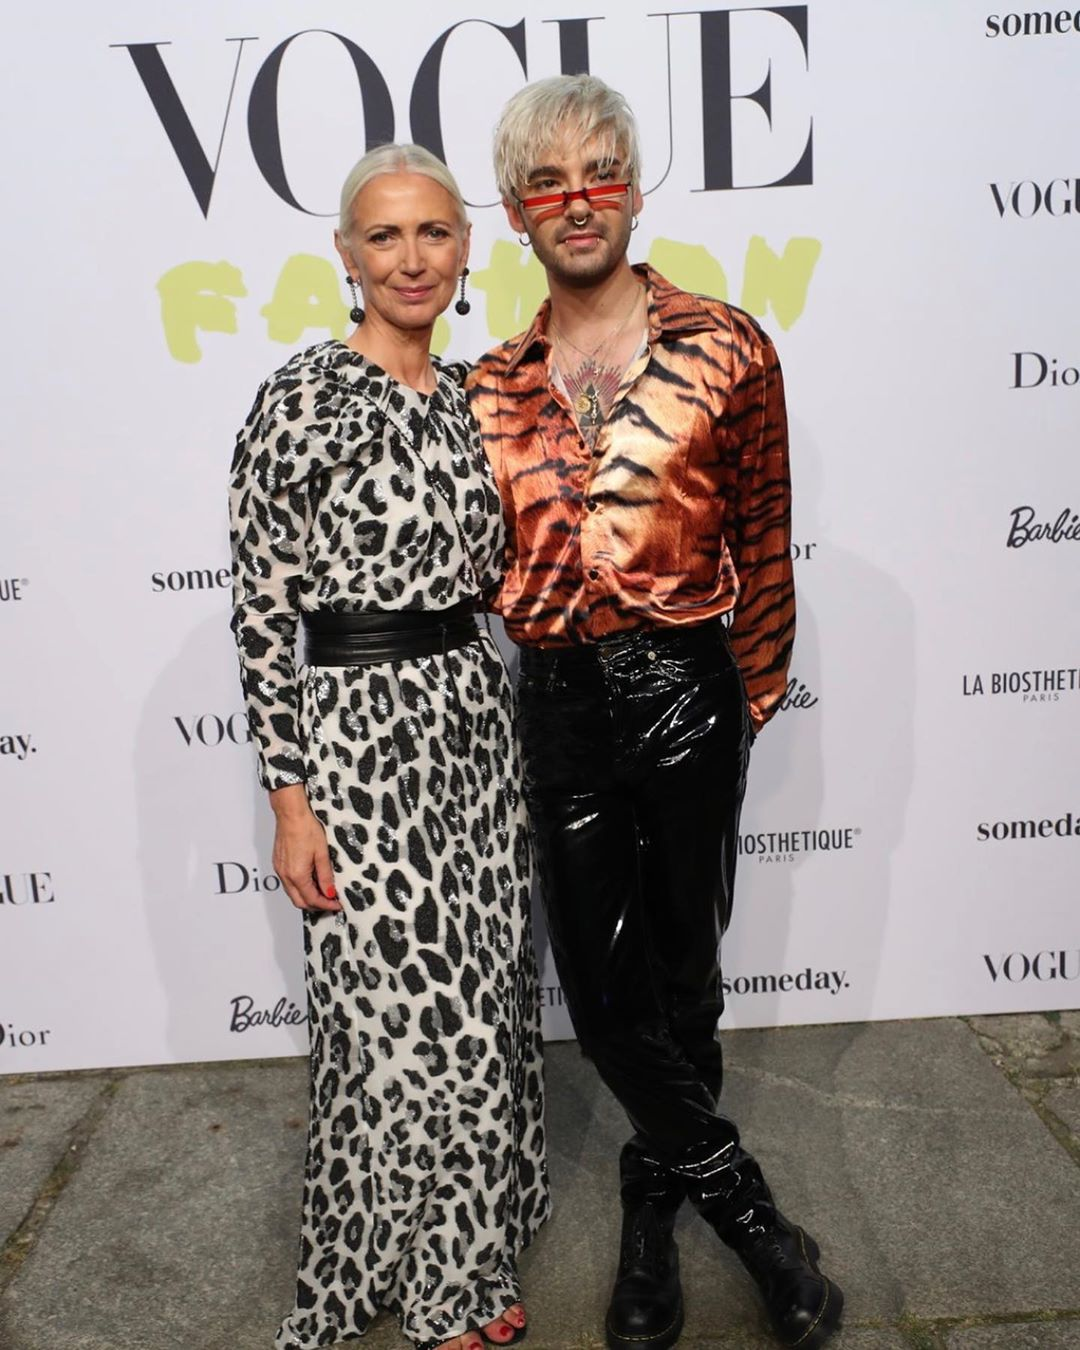 05.07.19 - Vogue Fashion Party, Berlin